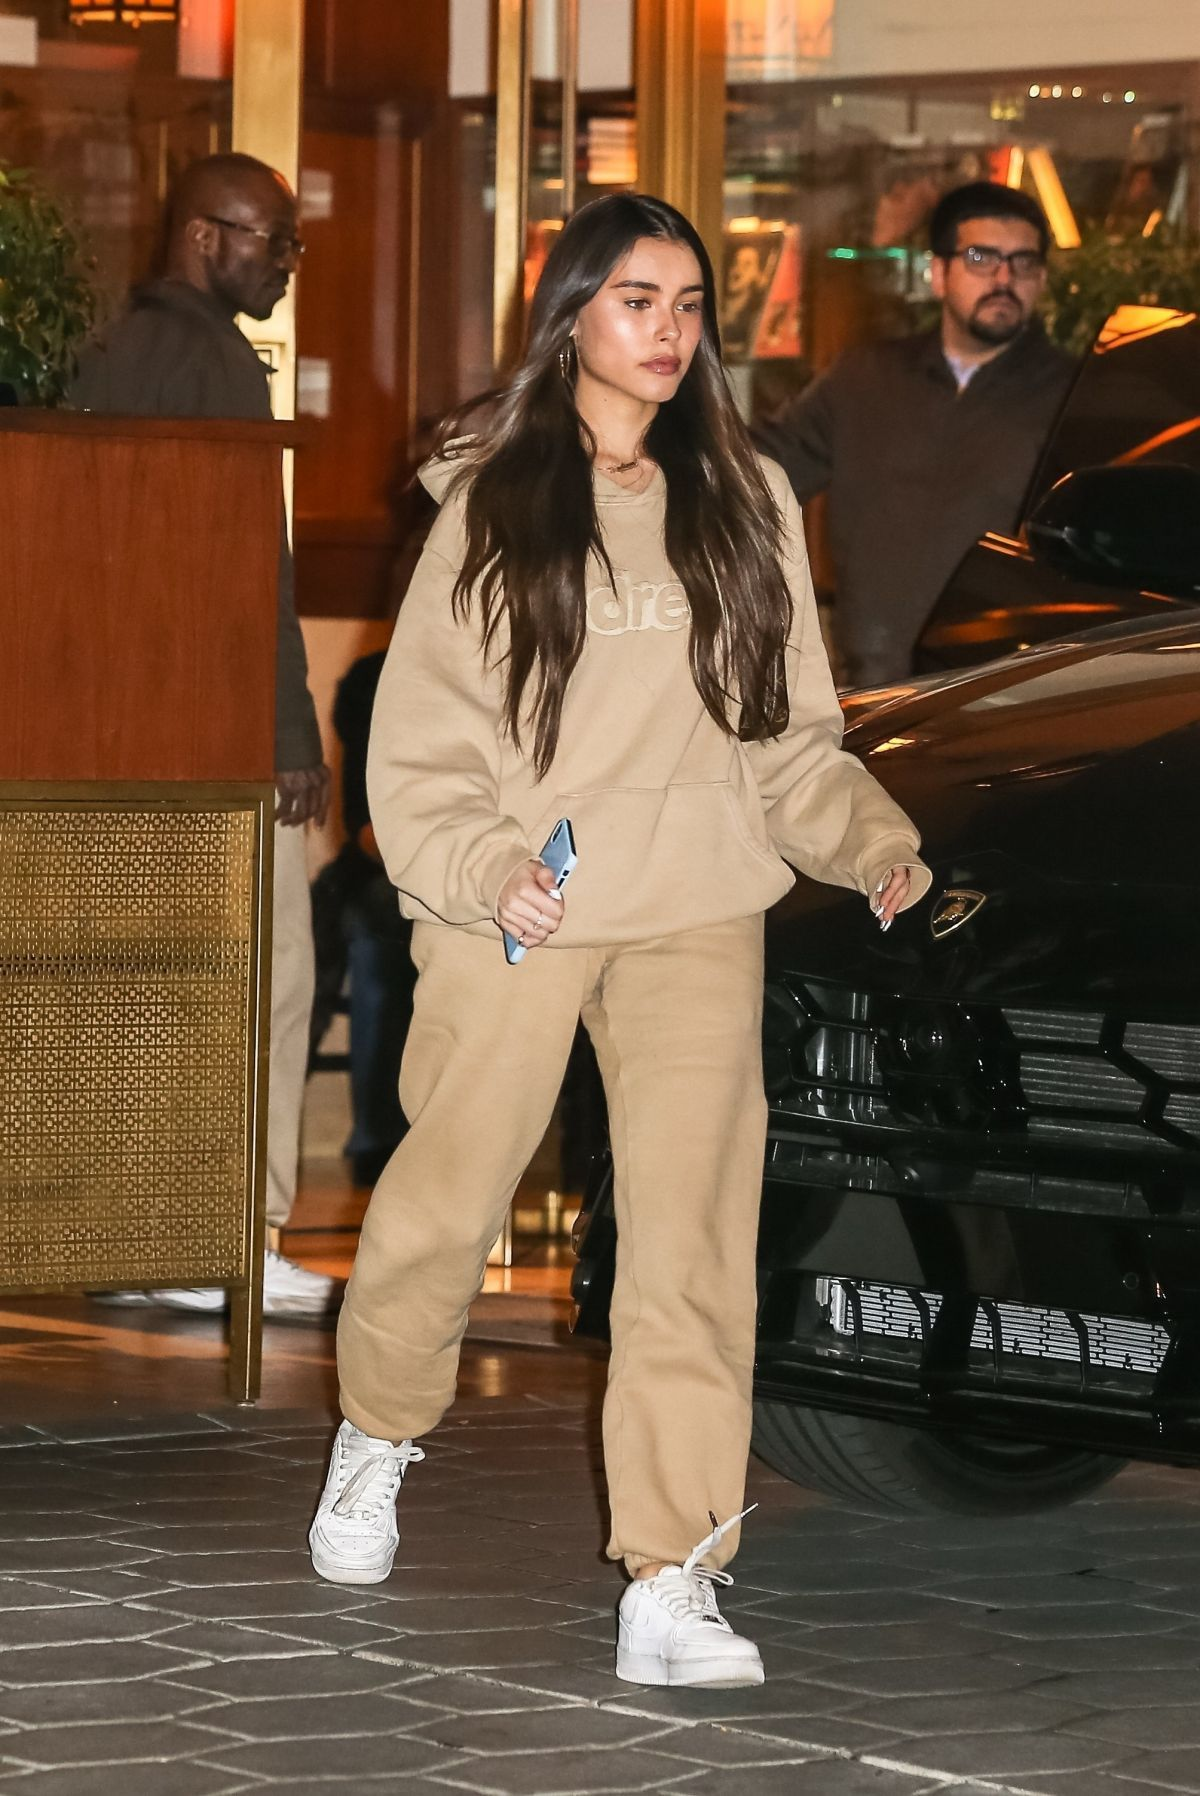 West Hollywood 02 11 2020 Beer Outfit Madison Beer Madison Beer Outfits [ 1796 x 1200 Pixel ]